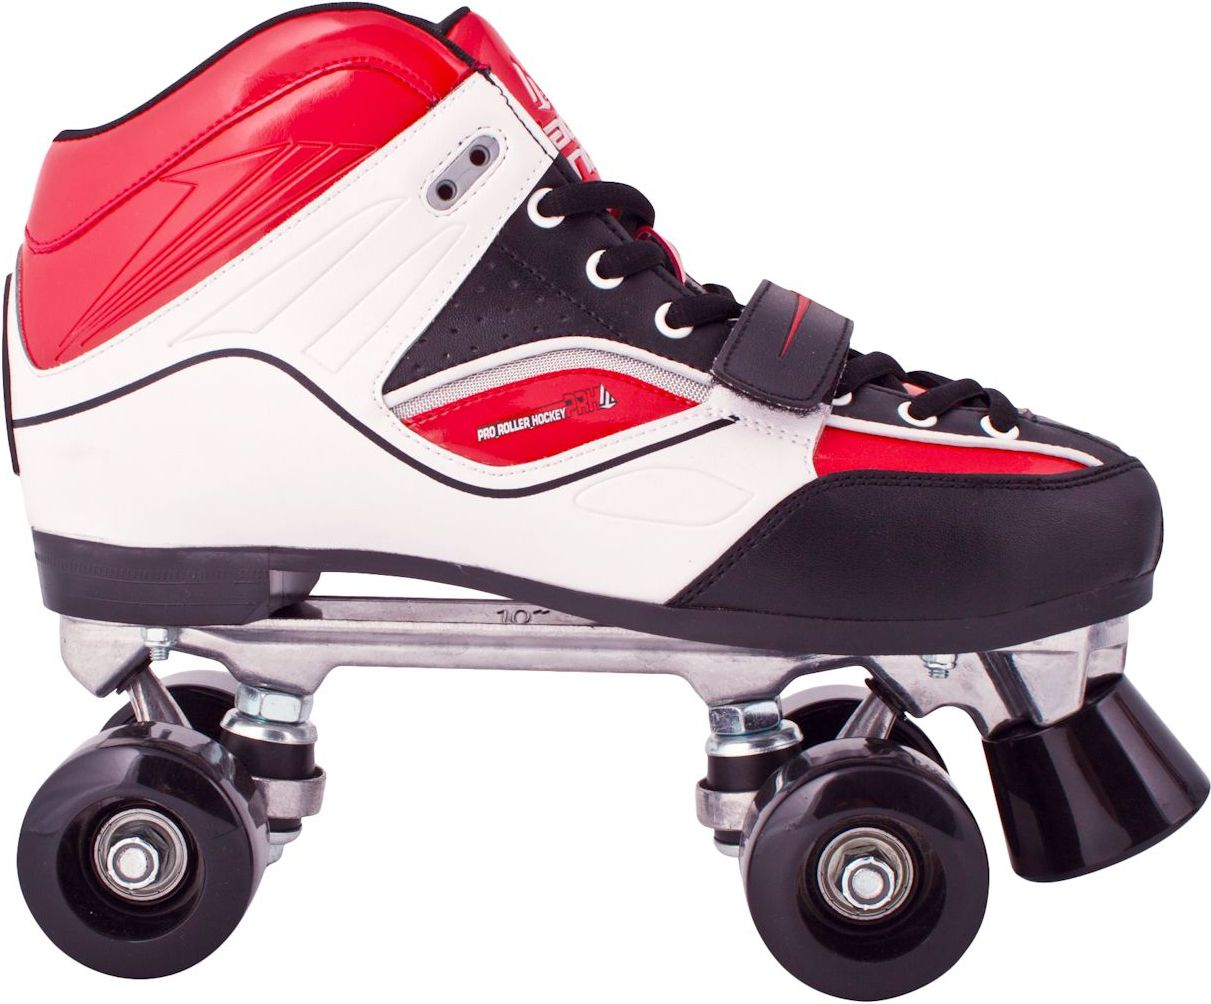 JACK LONDON Wrotki Pro Roller Hockey Senior 231533 rozmiar 40 - WIKR-1012187